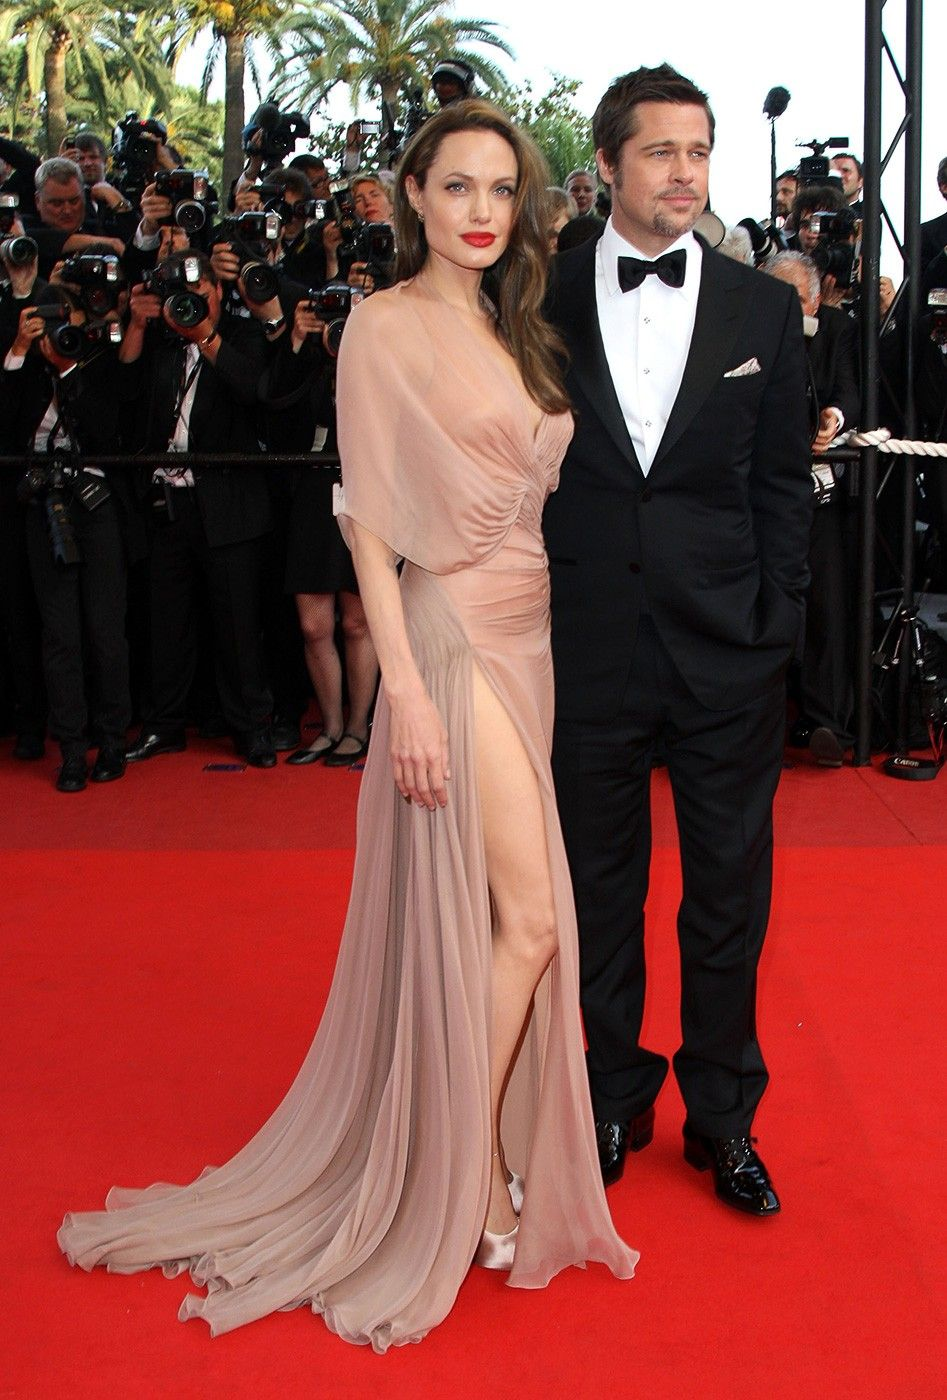 Aol Style News Trends And Advice Angelina Jolie Red Carpet Celebrity Red Carpet Nice Dresses